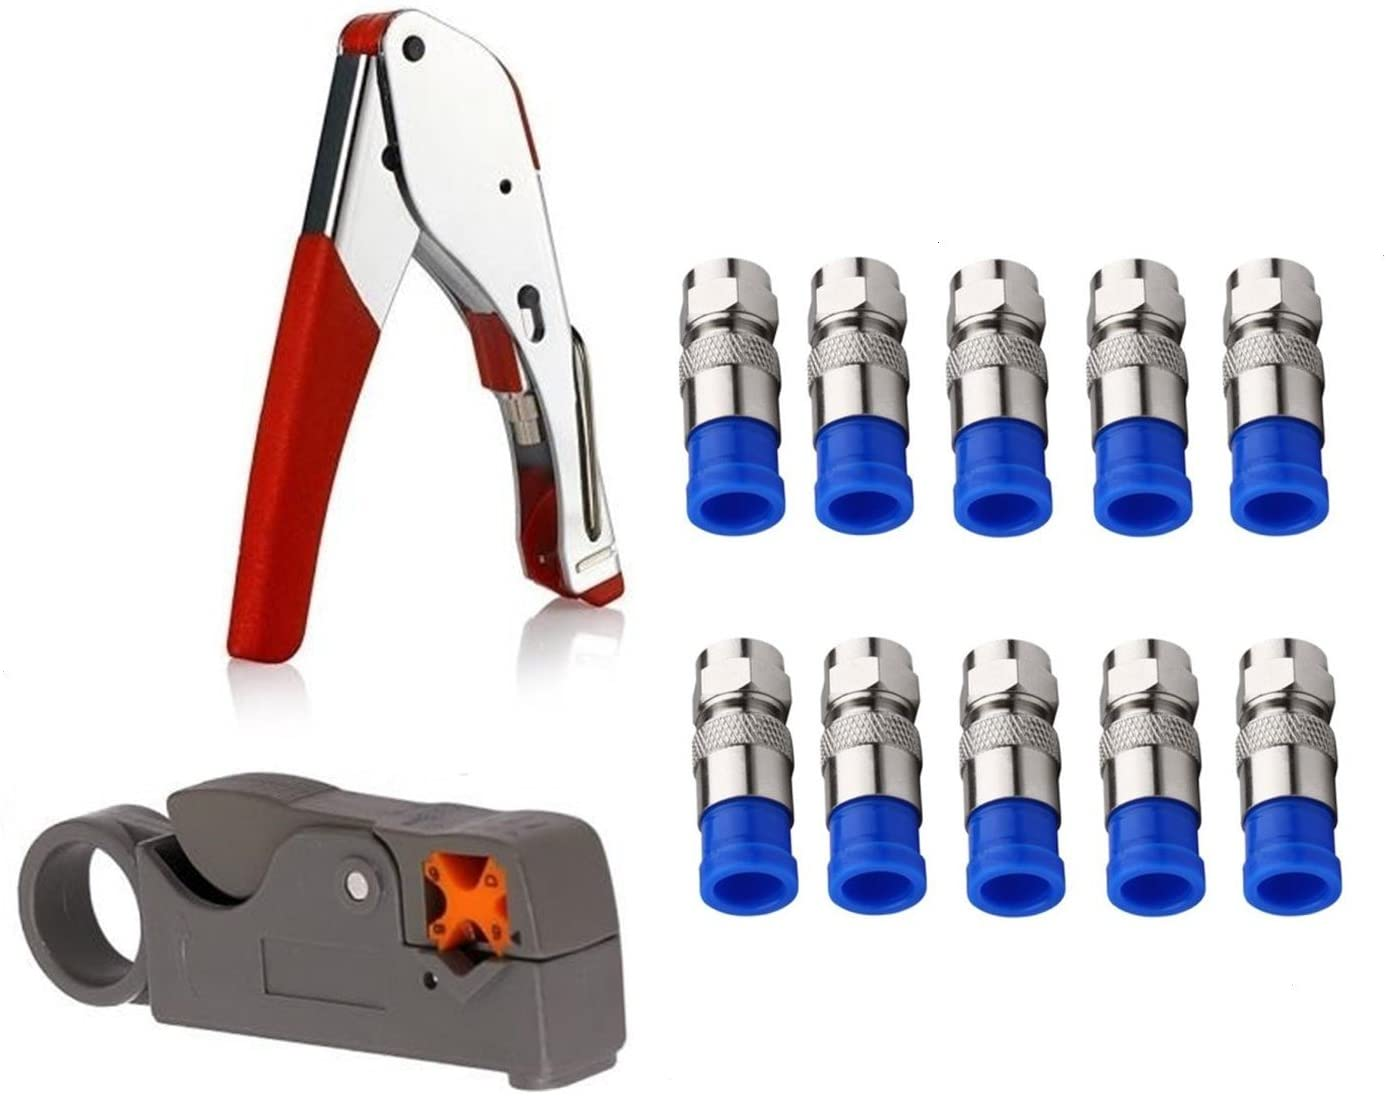 Gaobige Coax Cable Crimper Kit Tool rg6 Safety Sacramento Mall and trust rg59 for Compres Coaxial